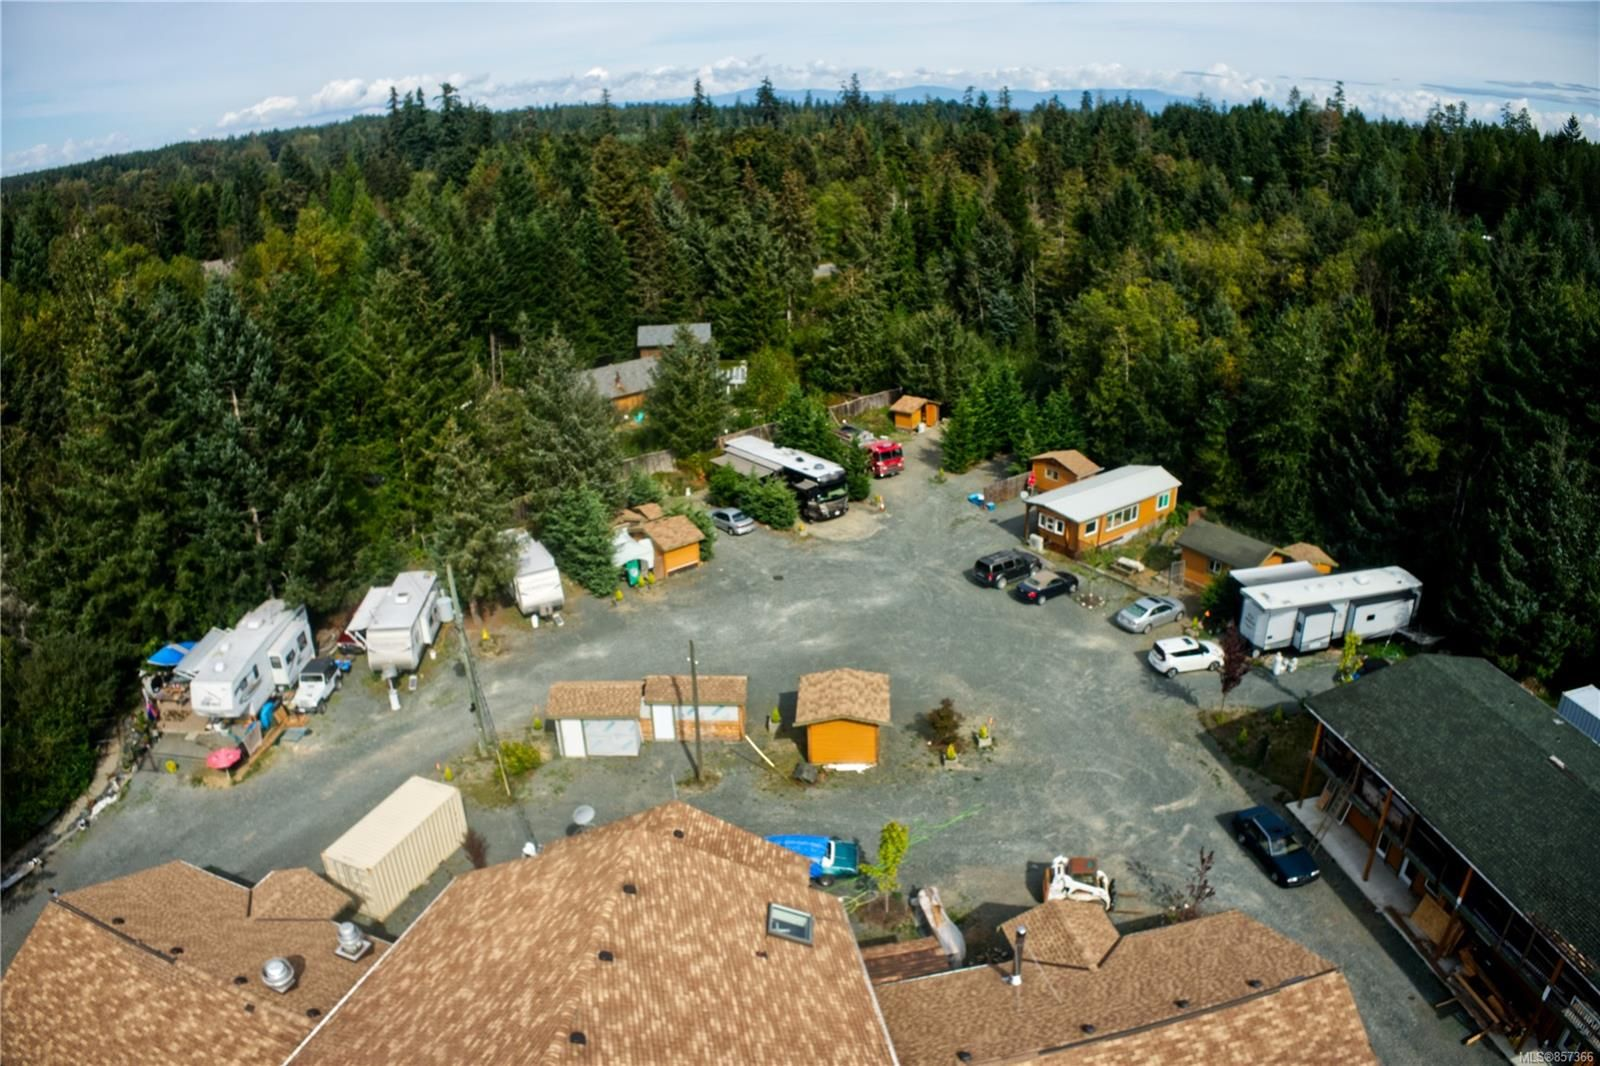 Photo 5: Photos: 1747 Nahmint Rd in : PQ Qualicum North Mixed Use for sale (Parksville/Qualicum)  : MLS®# 857366